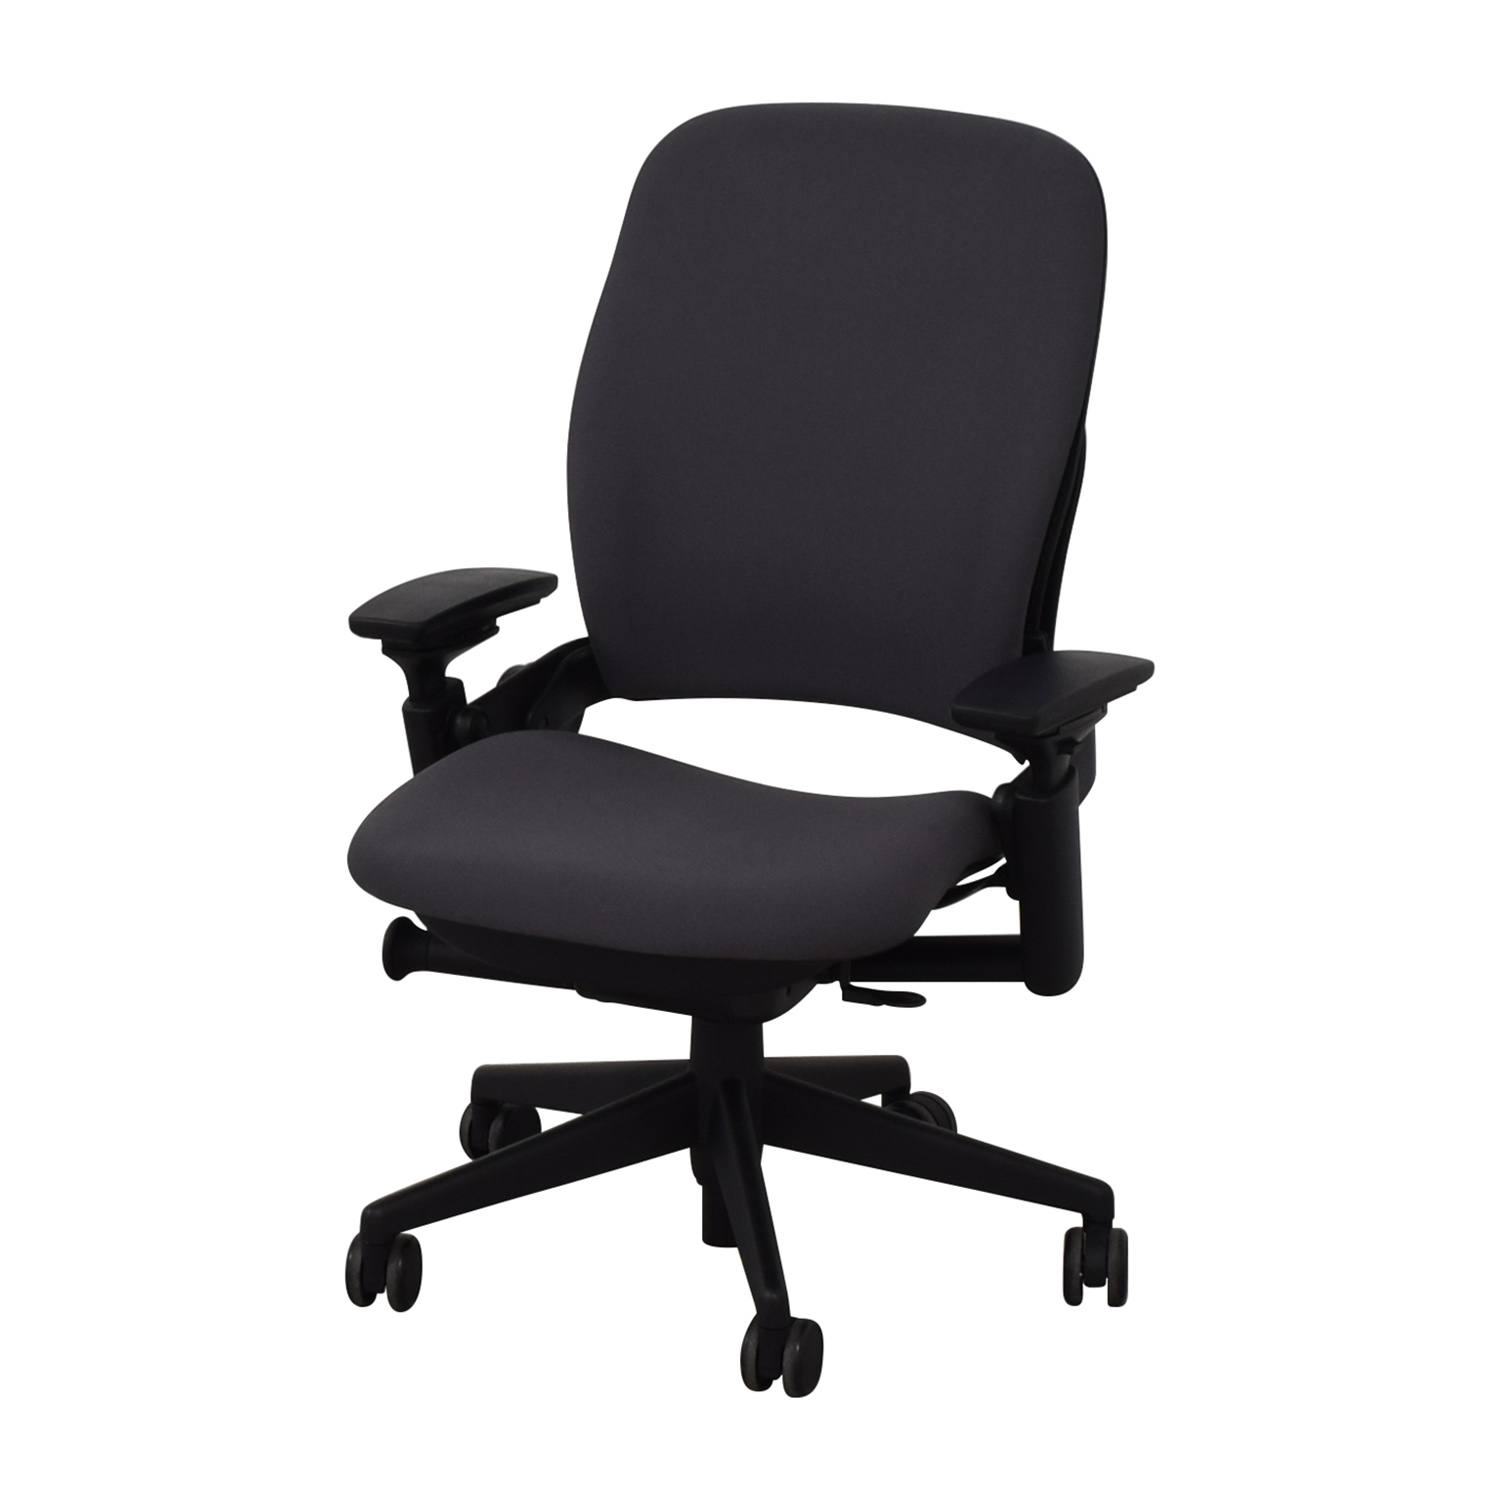 Steelcase Steelcase Leap Chair dimensions